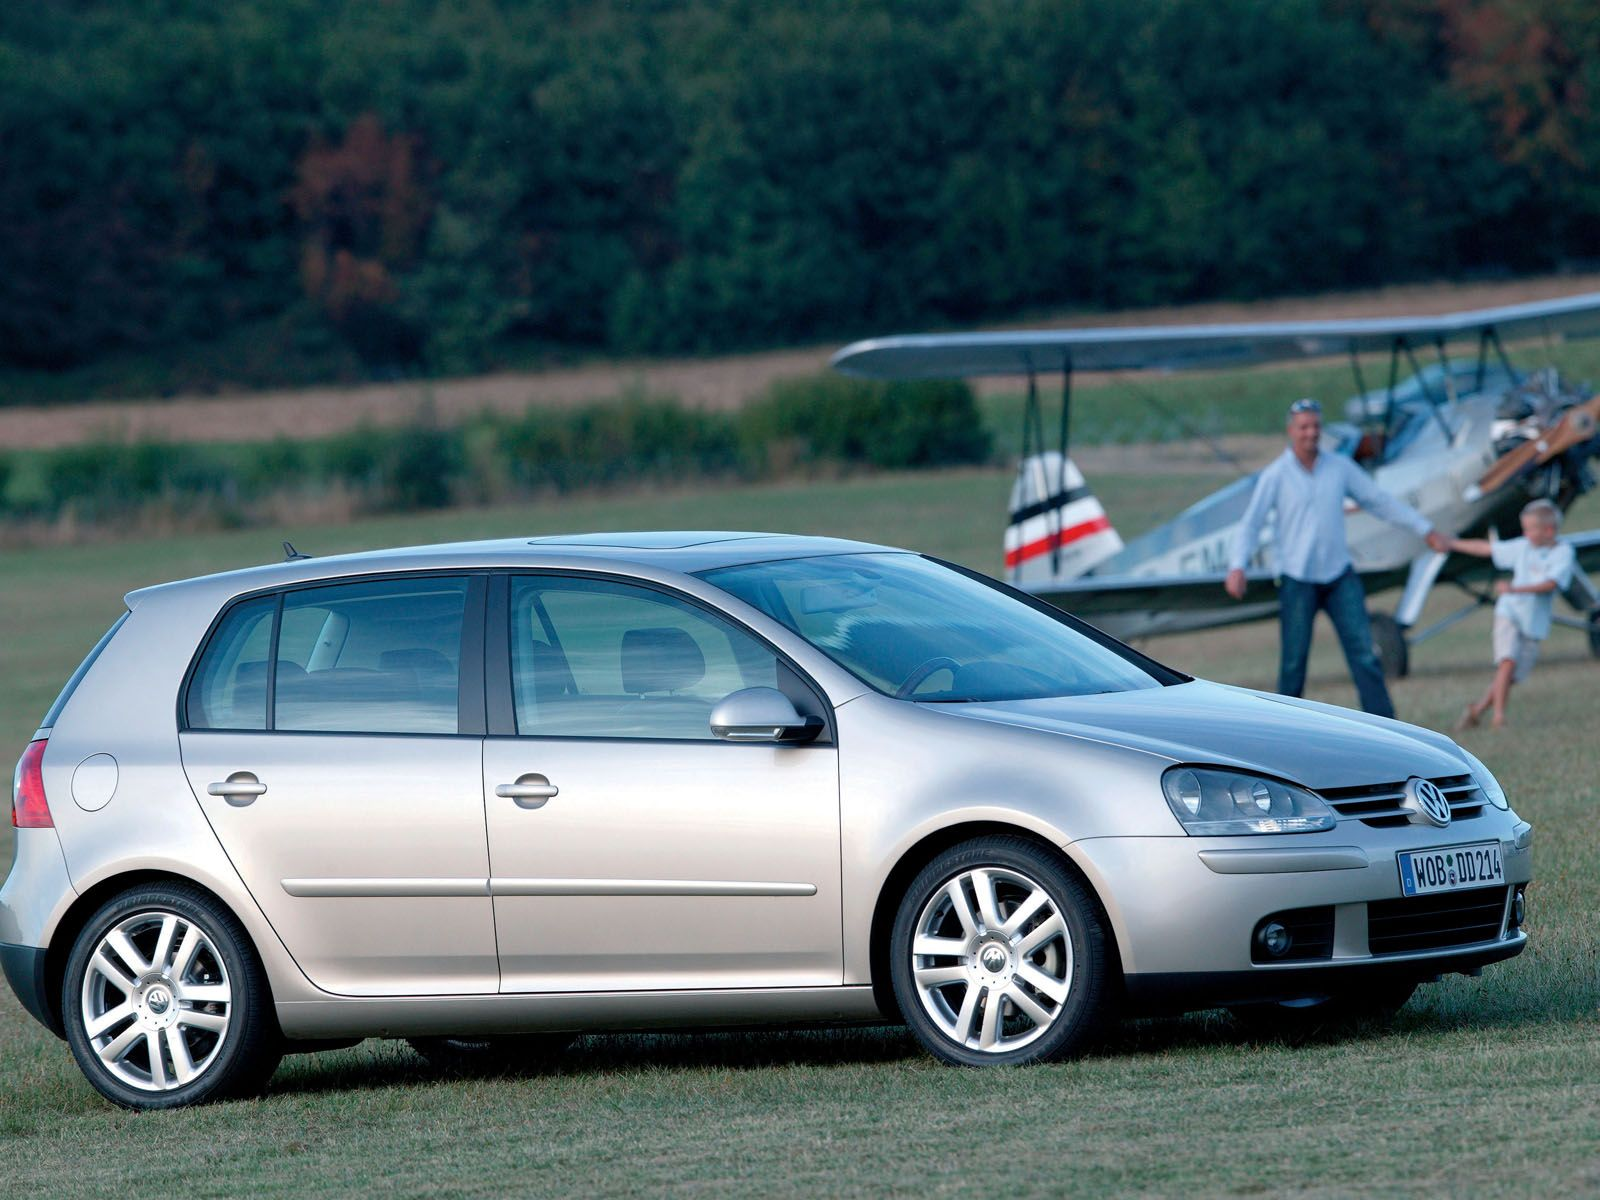 volkswagen golf v picture 9486 volkswagen photo. Black Bedroom Furniture Sets. Home Design Ideas